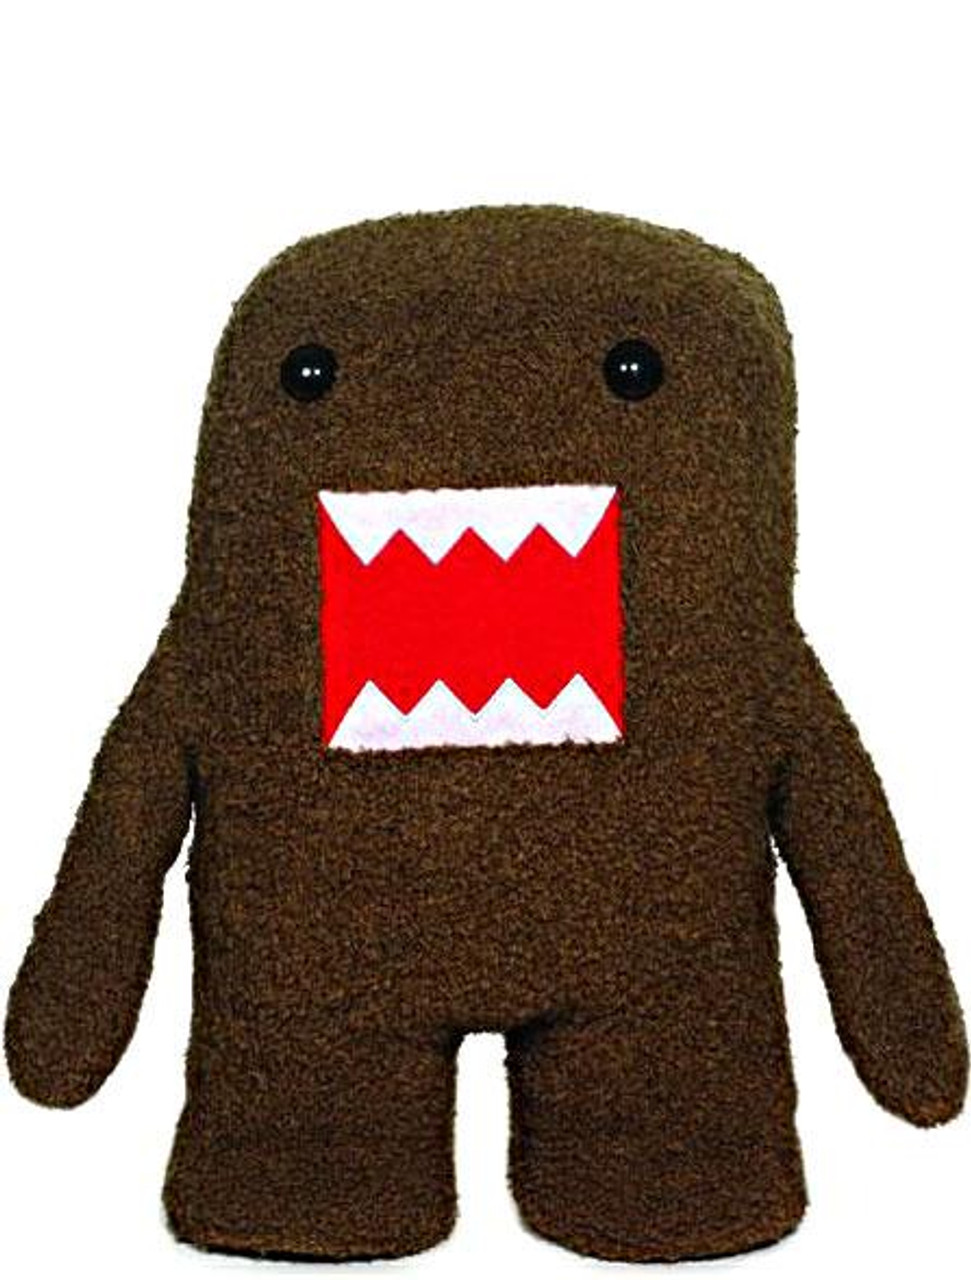 Domo 5-Inch Plush Figure [Brown]